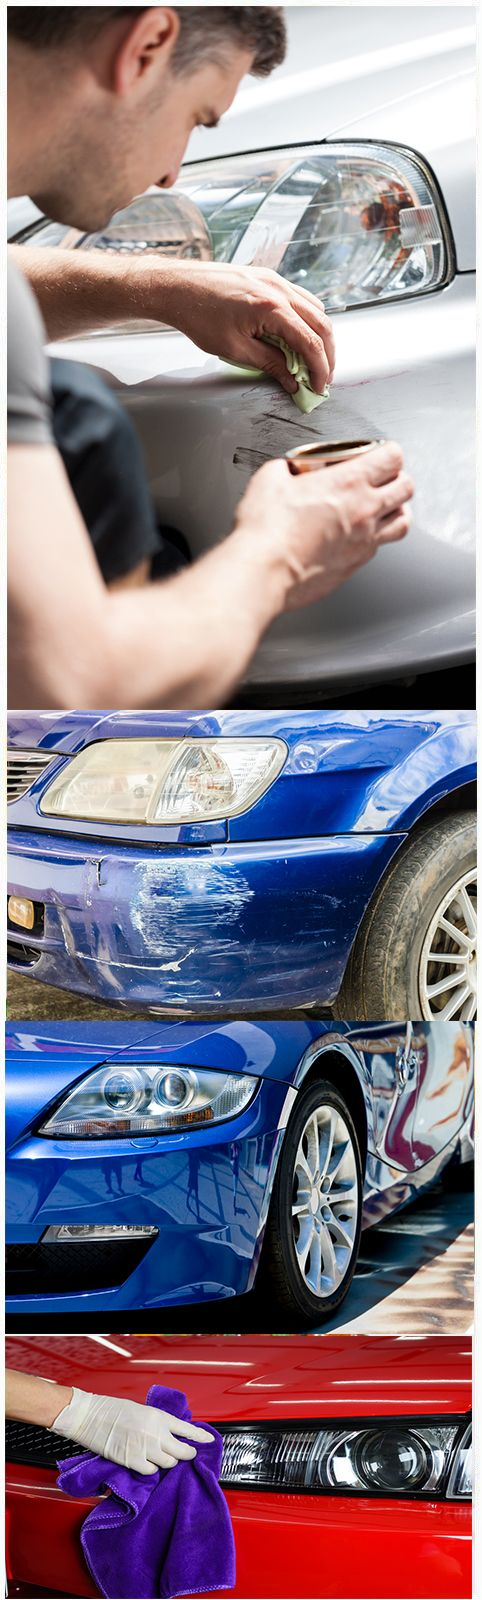 20 most brilliant car cleaning tips and hacks diy car car 10 diy car wash tricks and tips solutioingenieria Image collections